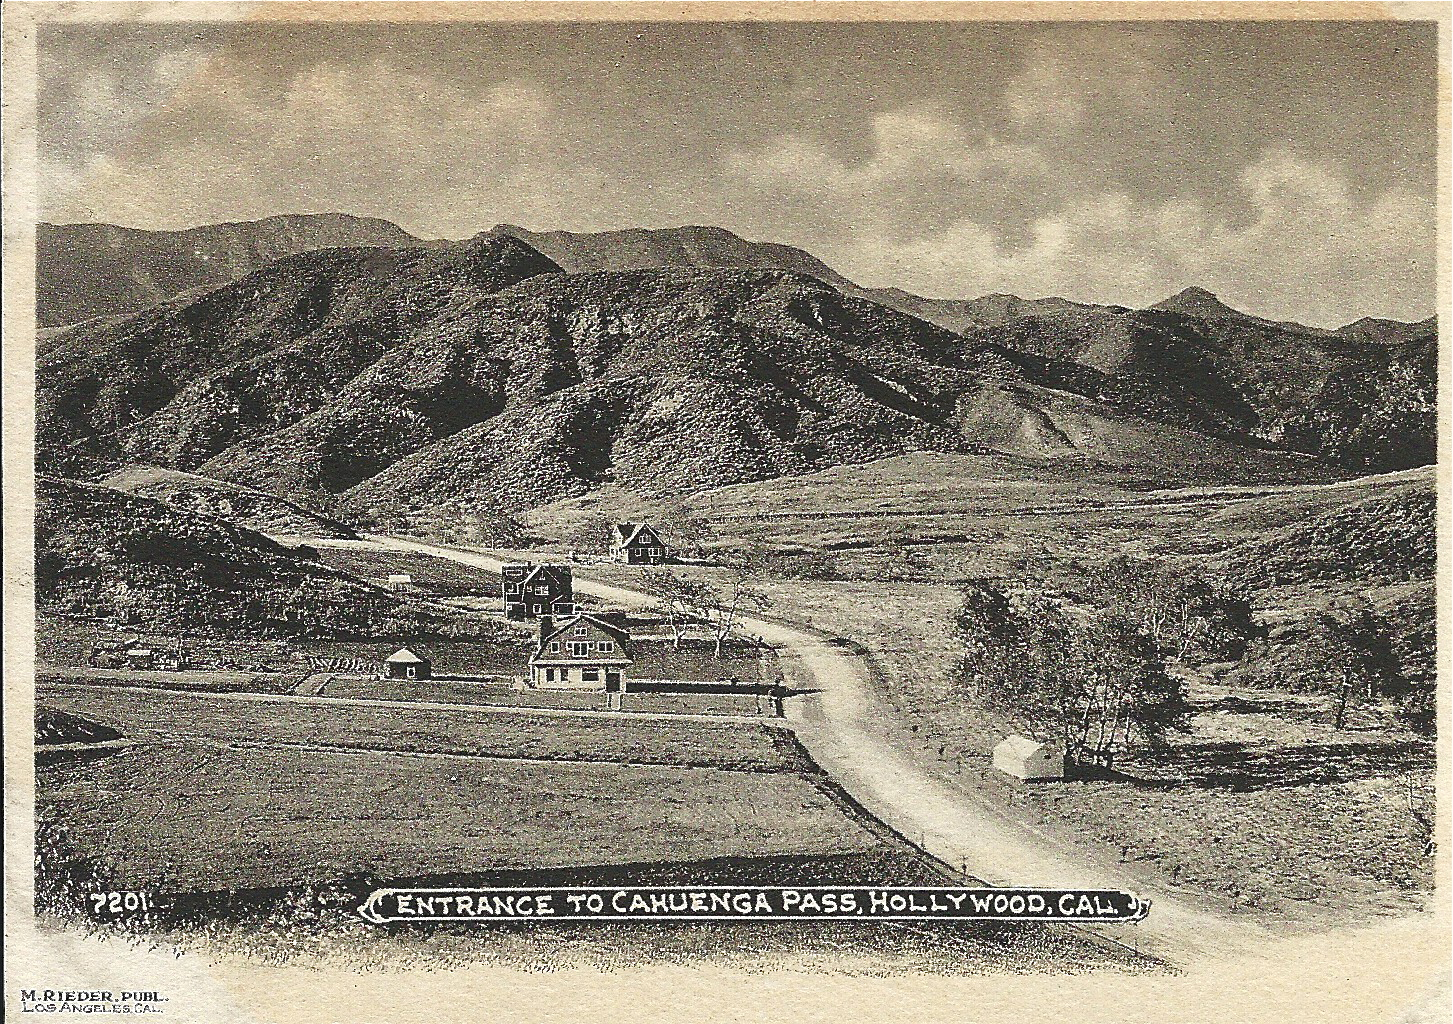 Entrance to the Cahuenga Pass from the south